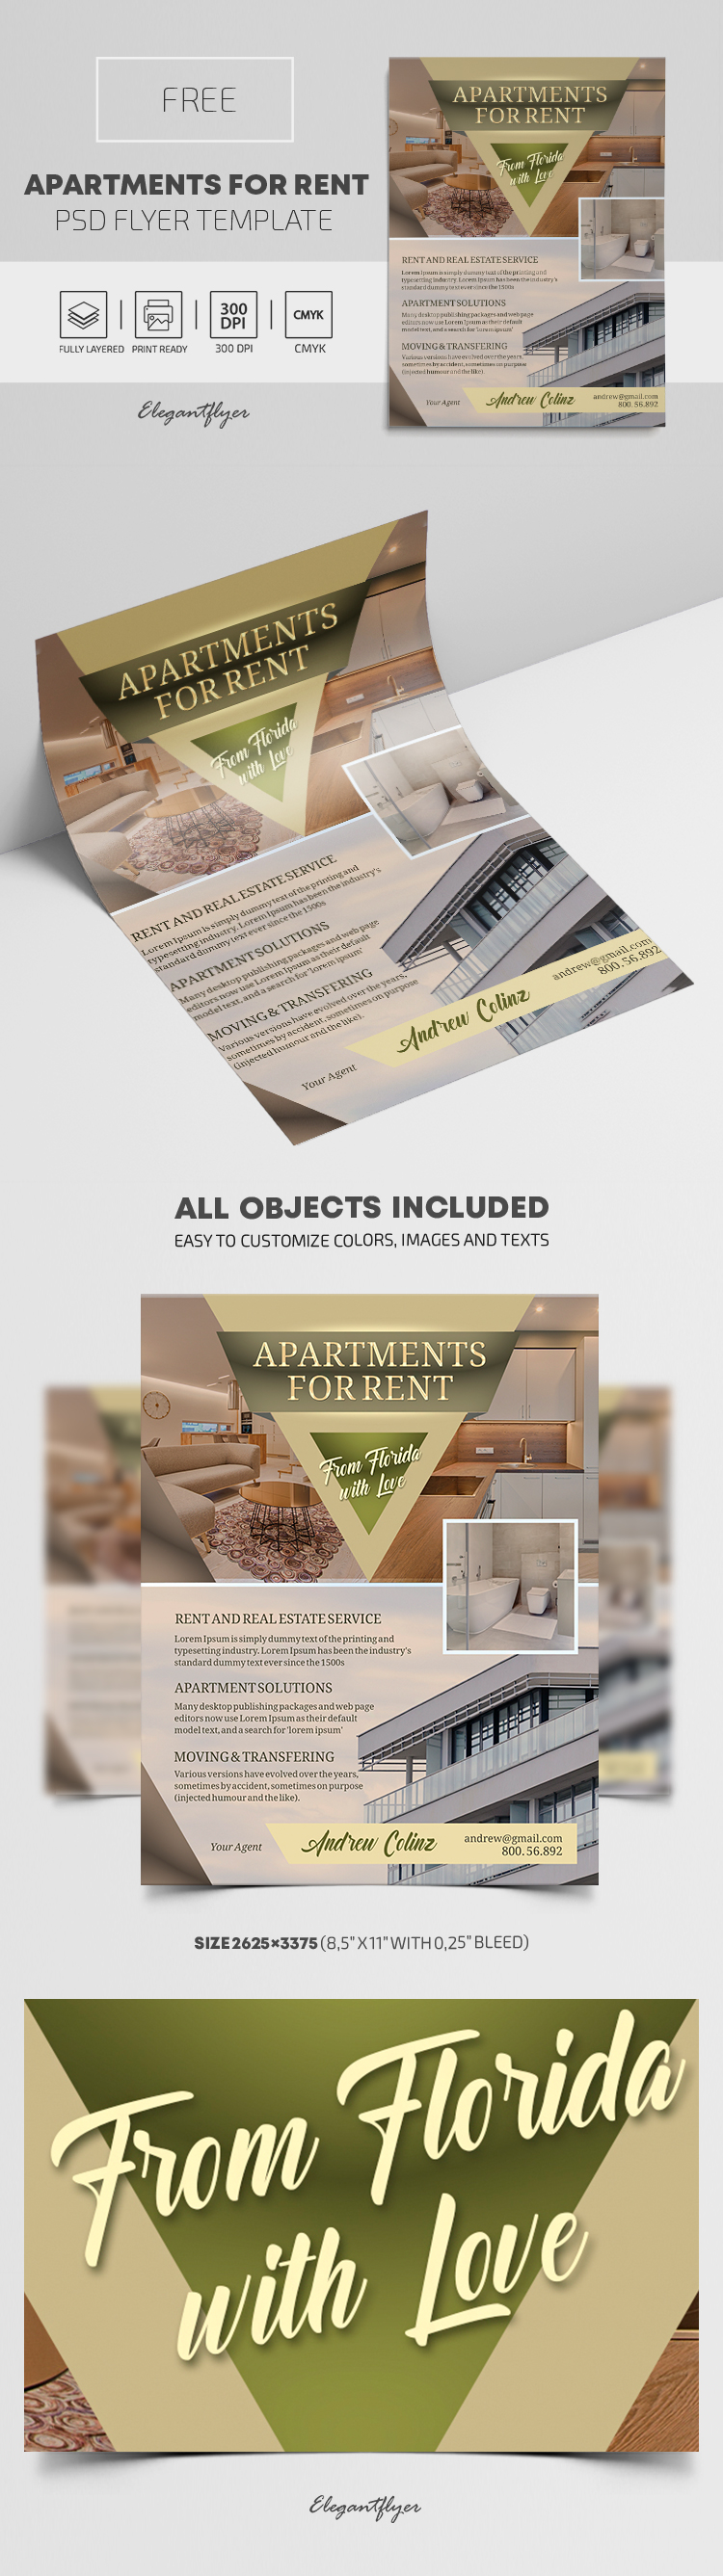 Apartments For Rent – Free Flyer PSD Template